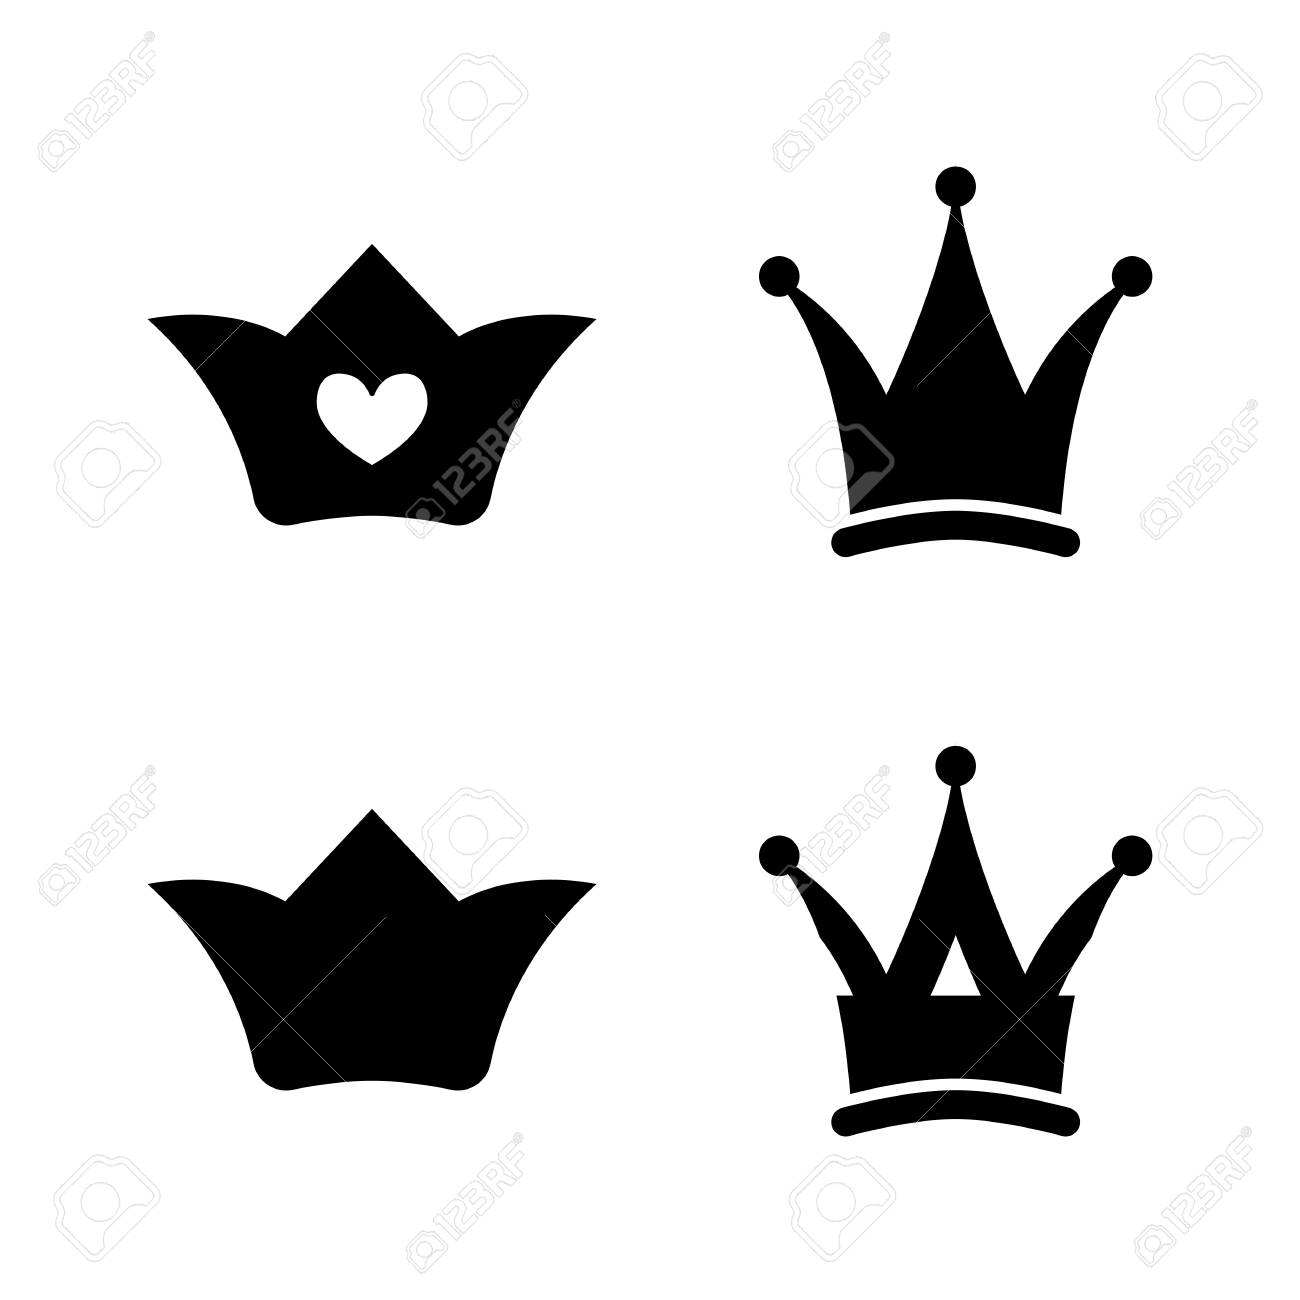 crown icons princess crown vector illustration silhouettes rh 123rf com free vector crown illustration free vector crown silhouette